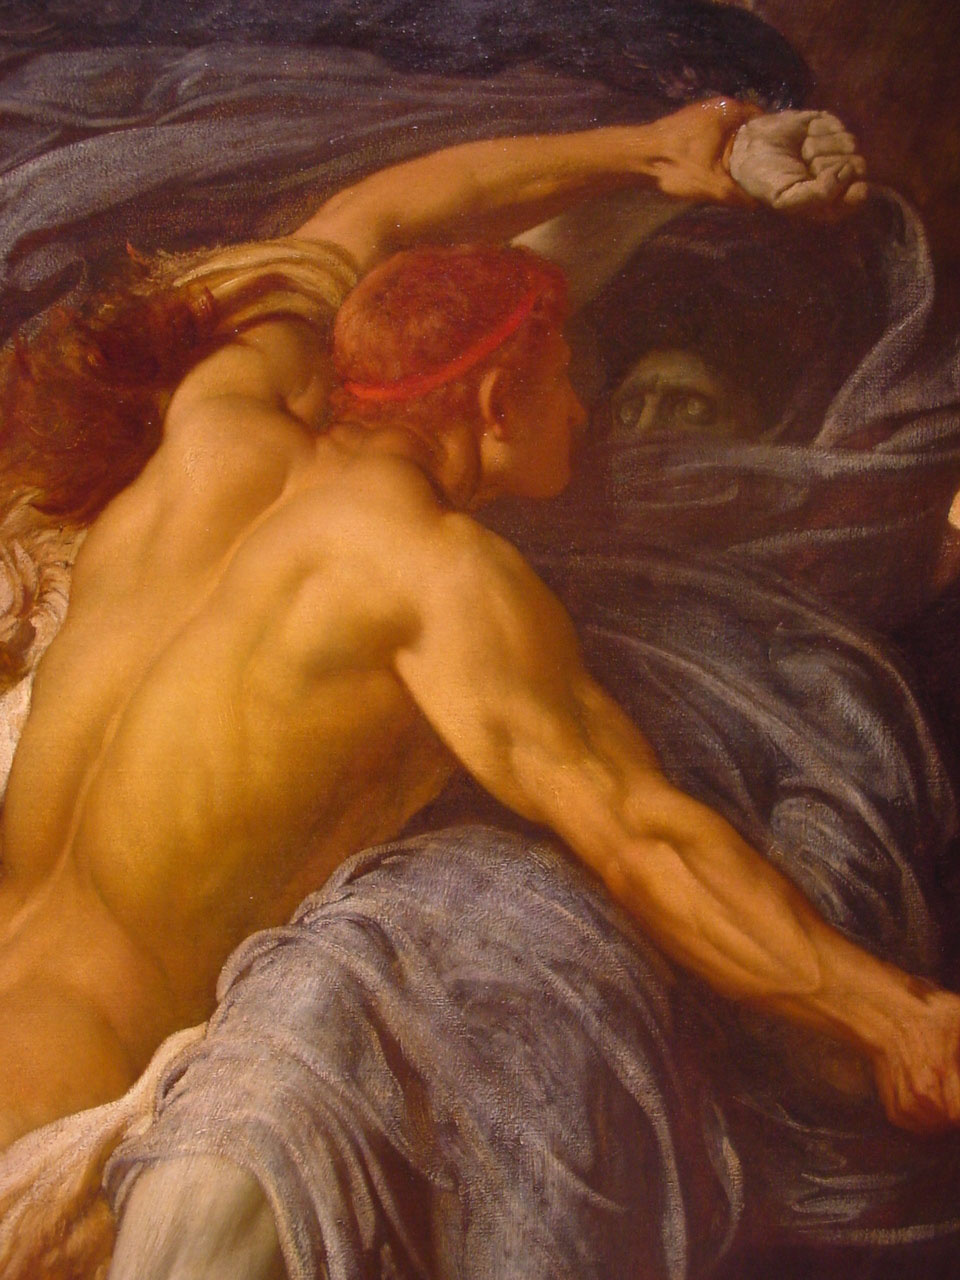 Frederic Leighton. Fight of Hercules and Death for Alceste's body (fragment)